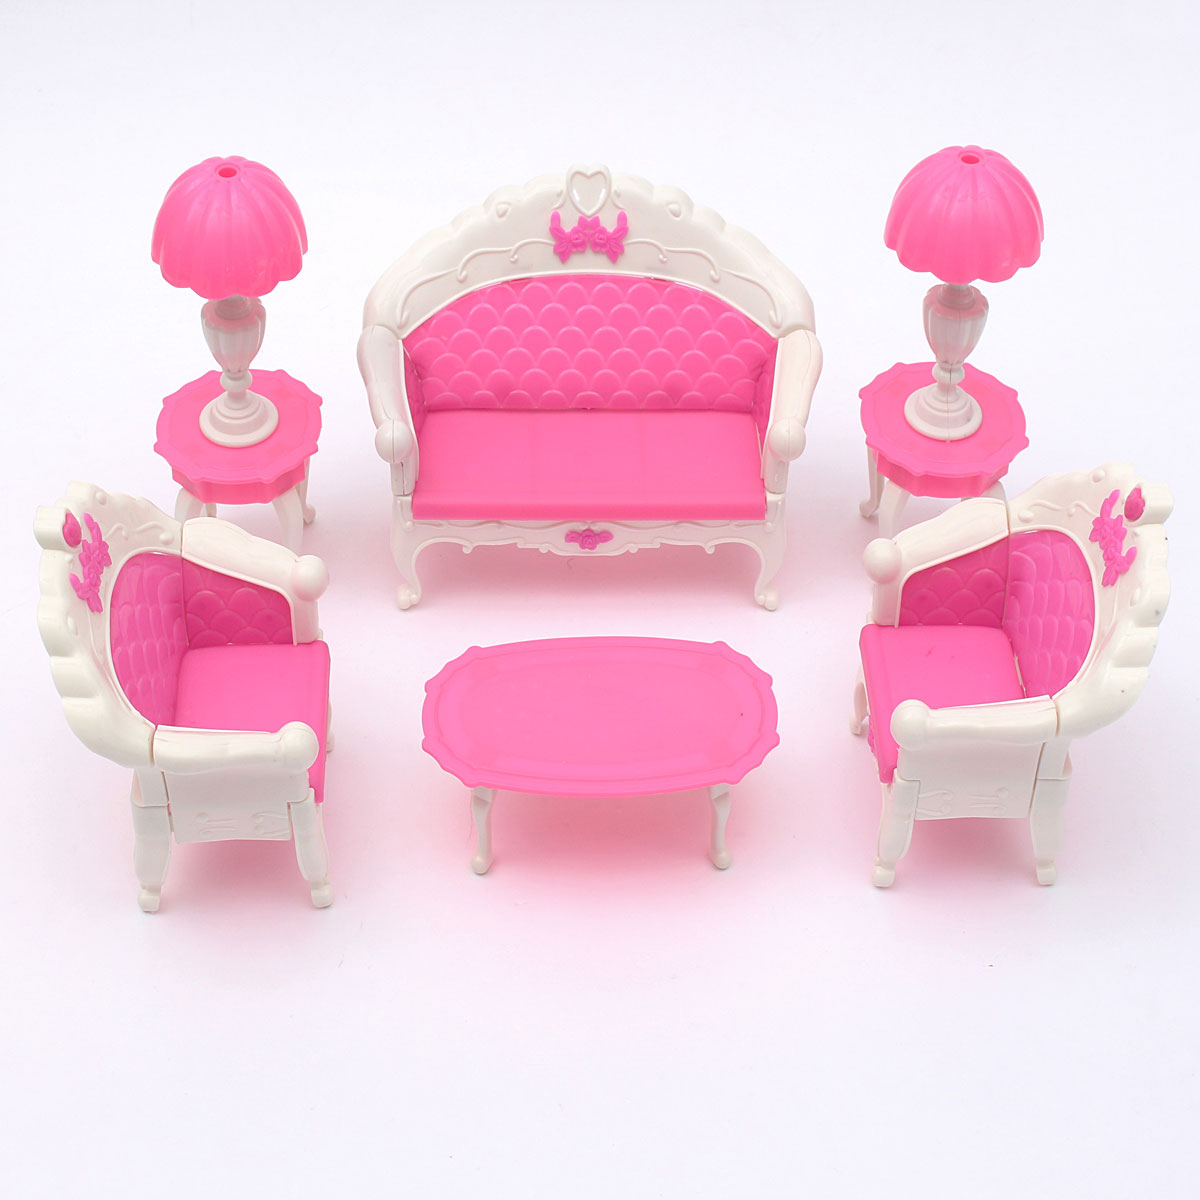 Superior Miniatura Pink Dollhouse Furniture Living Room Parlour Sofa Set For Doll  Dollhouse Accessories Toys For Children In Doll Houses From Toys U0026 Hobbies  On ...